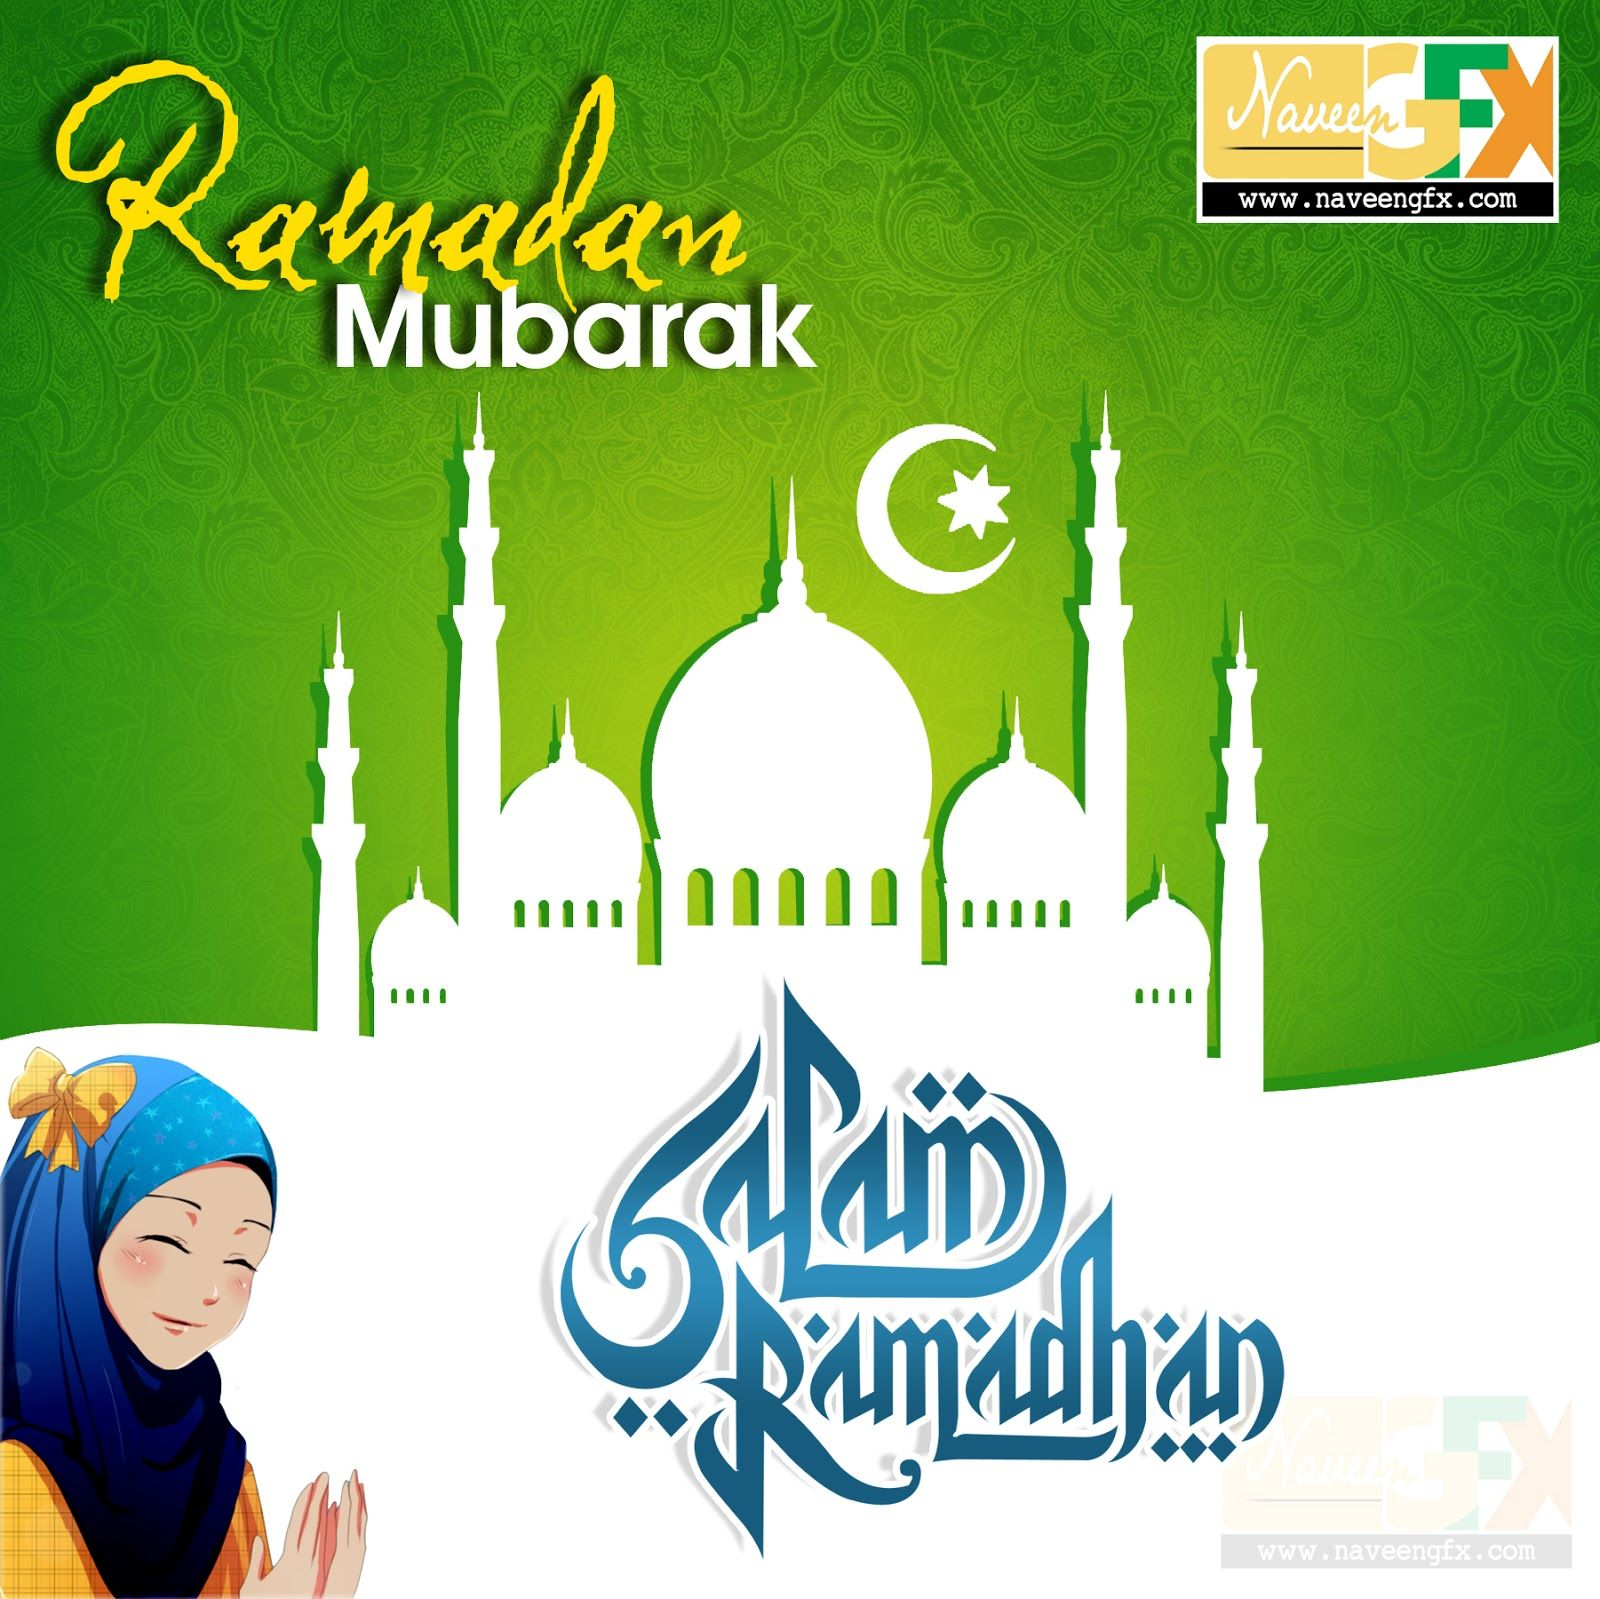 Hd wallpaper ramzan mubarak - Ramadan Mubarak Kareem Stylish Wallpaper